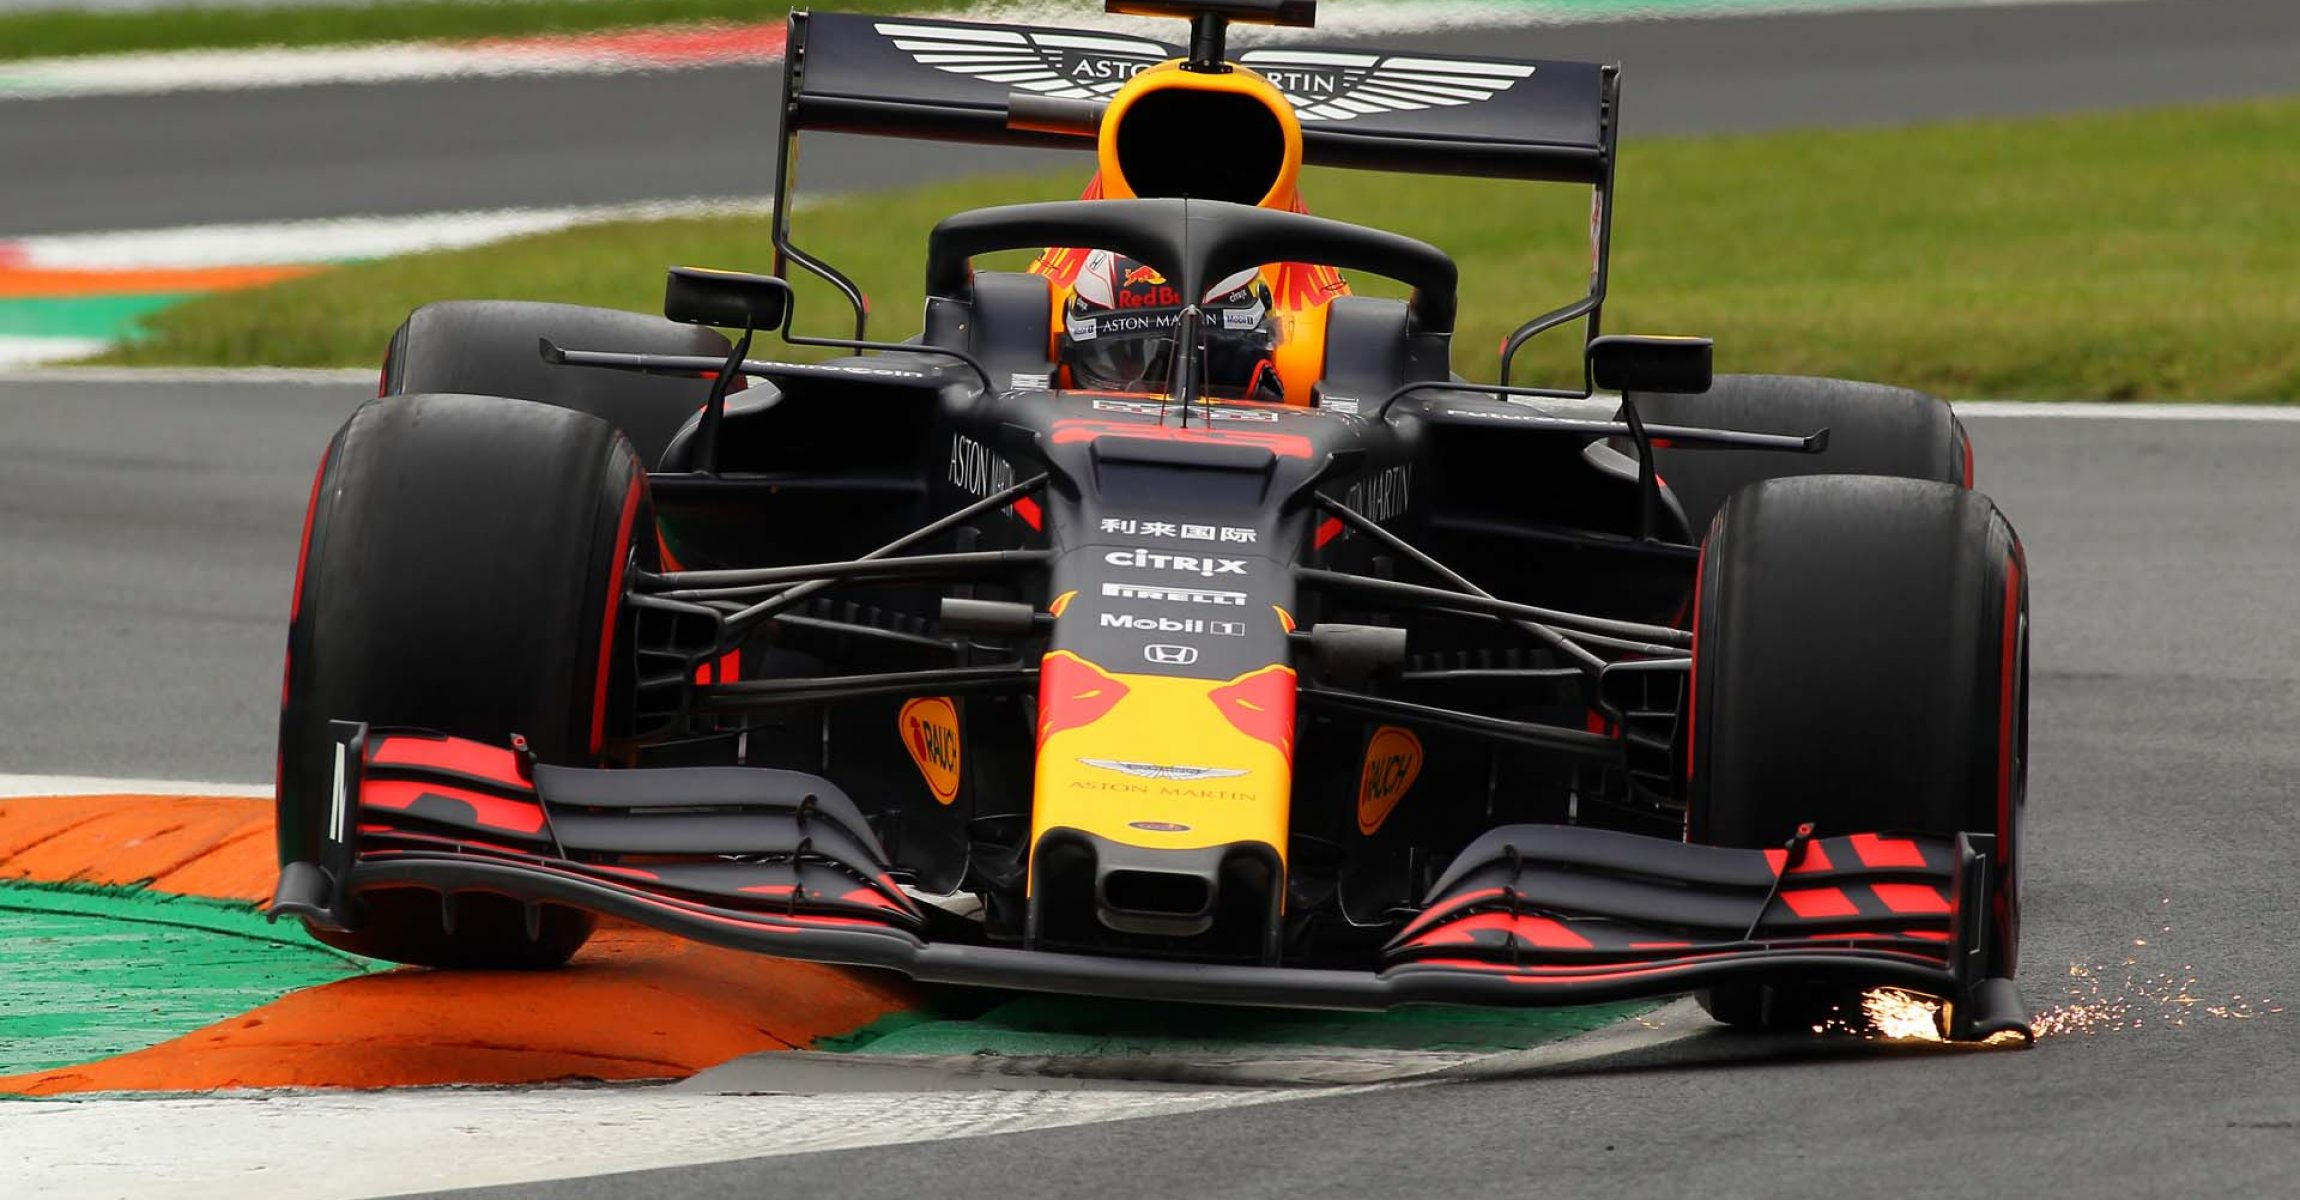 Italian Grand Prix 2019, Monza, Friday, Max Verstappen, Red Bull